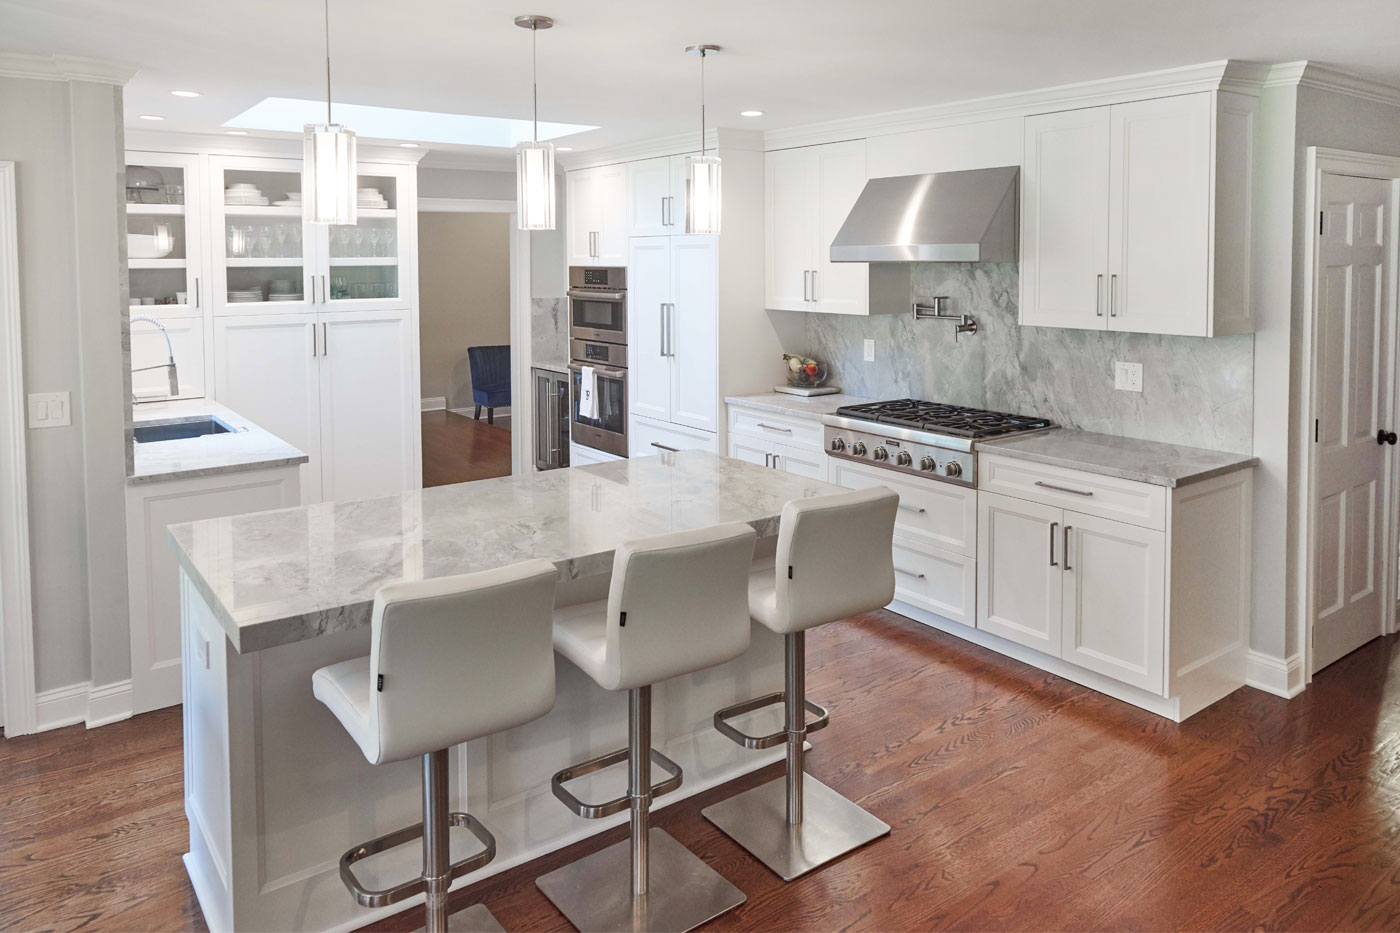 maria-matluck-kitchen-designer-remodeling-connecticut-49